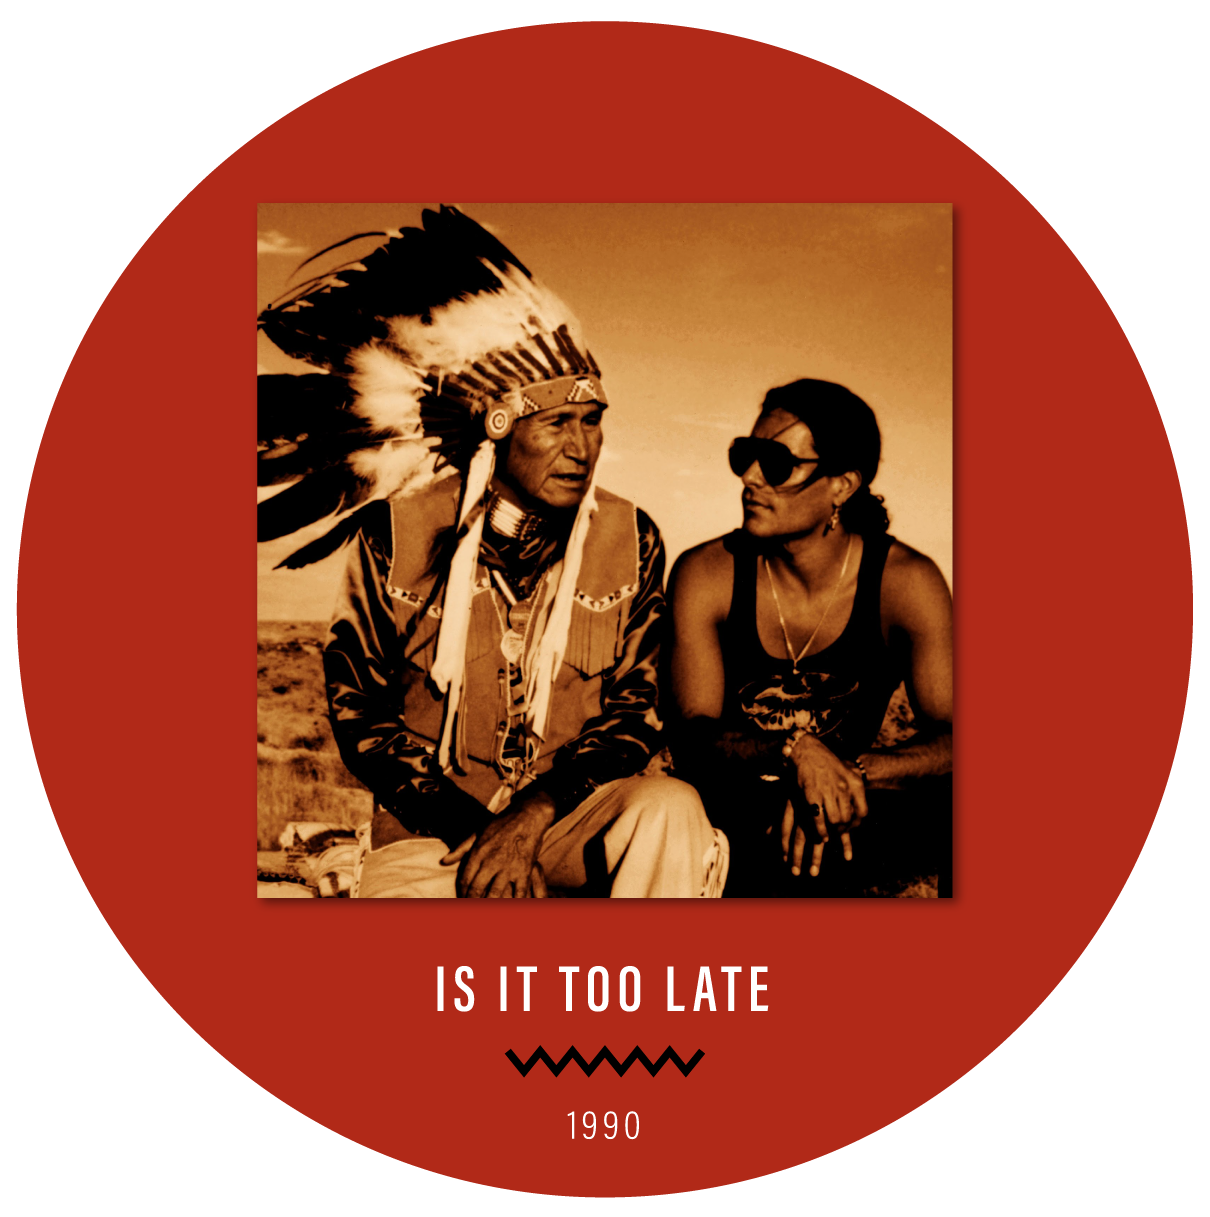 FILM-CARD-IS-IT-TOO-LATE-circle.png